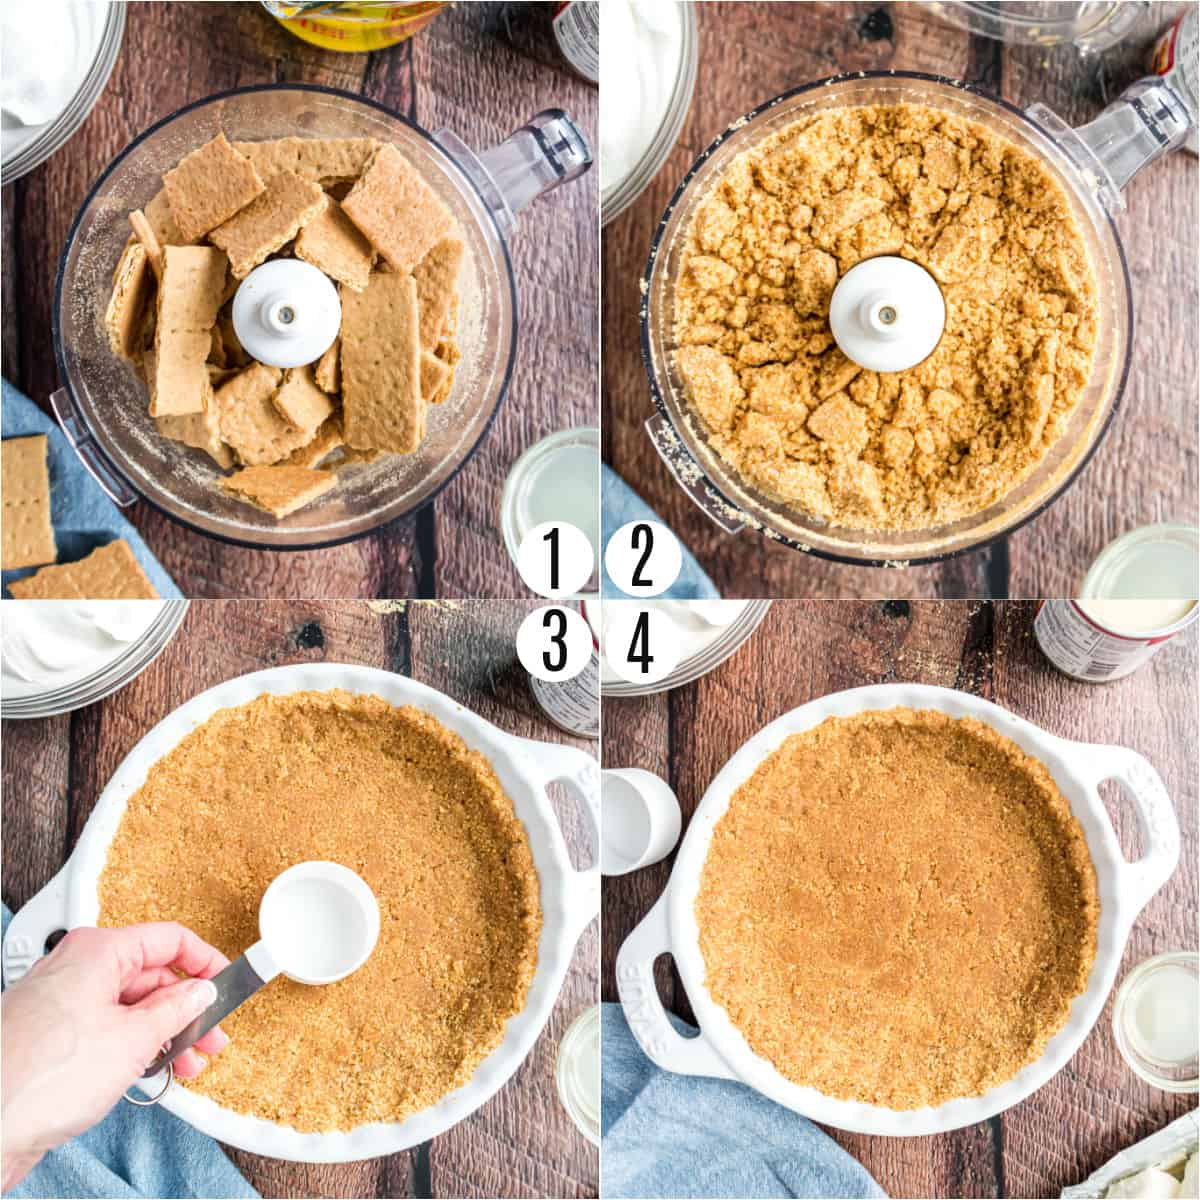 Step by step photos showing how to make a graham cracker crust.